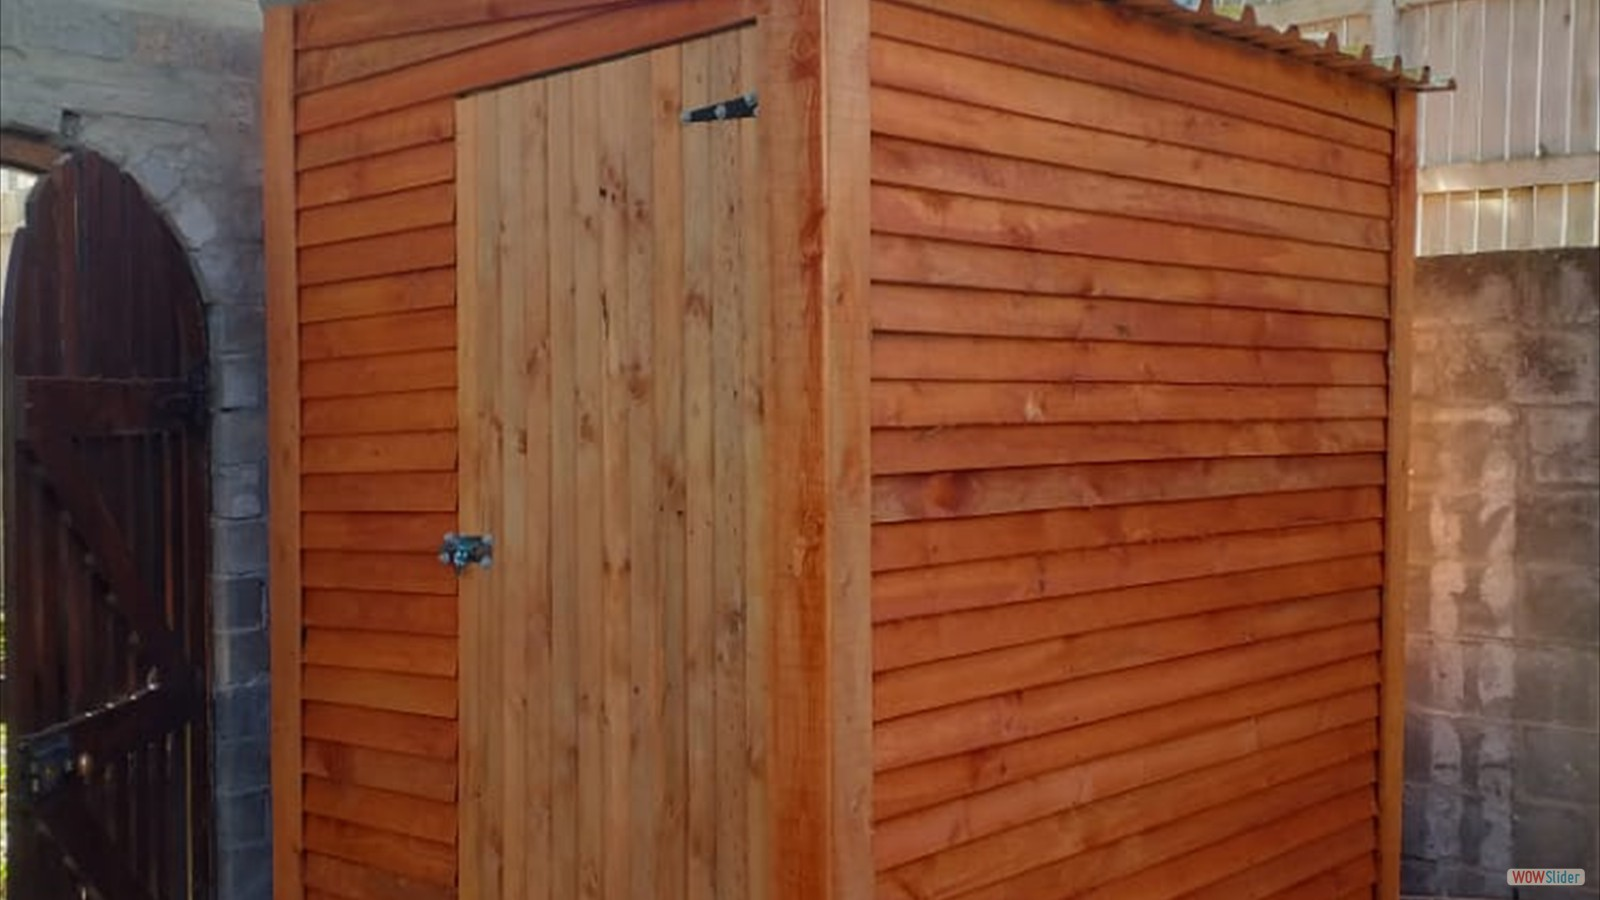 Tool Shed / Storage Units